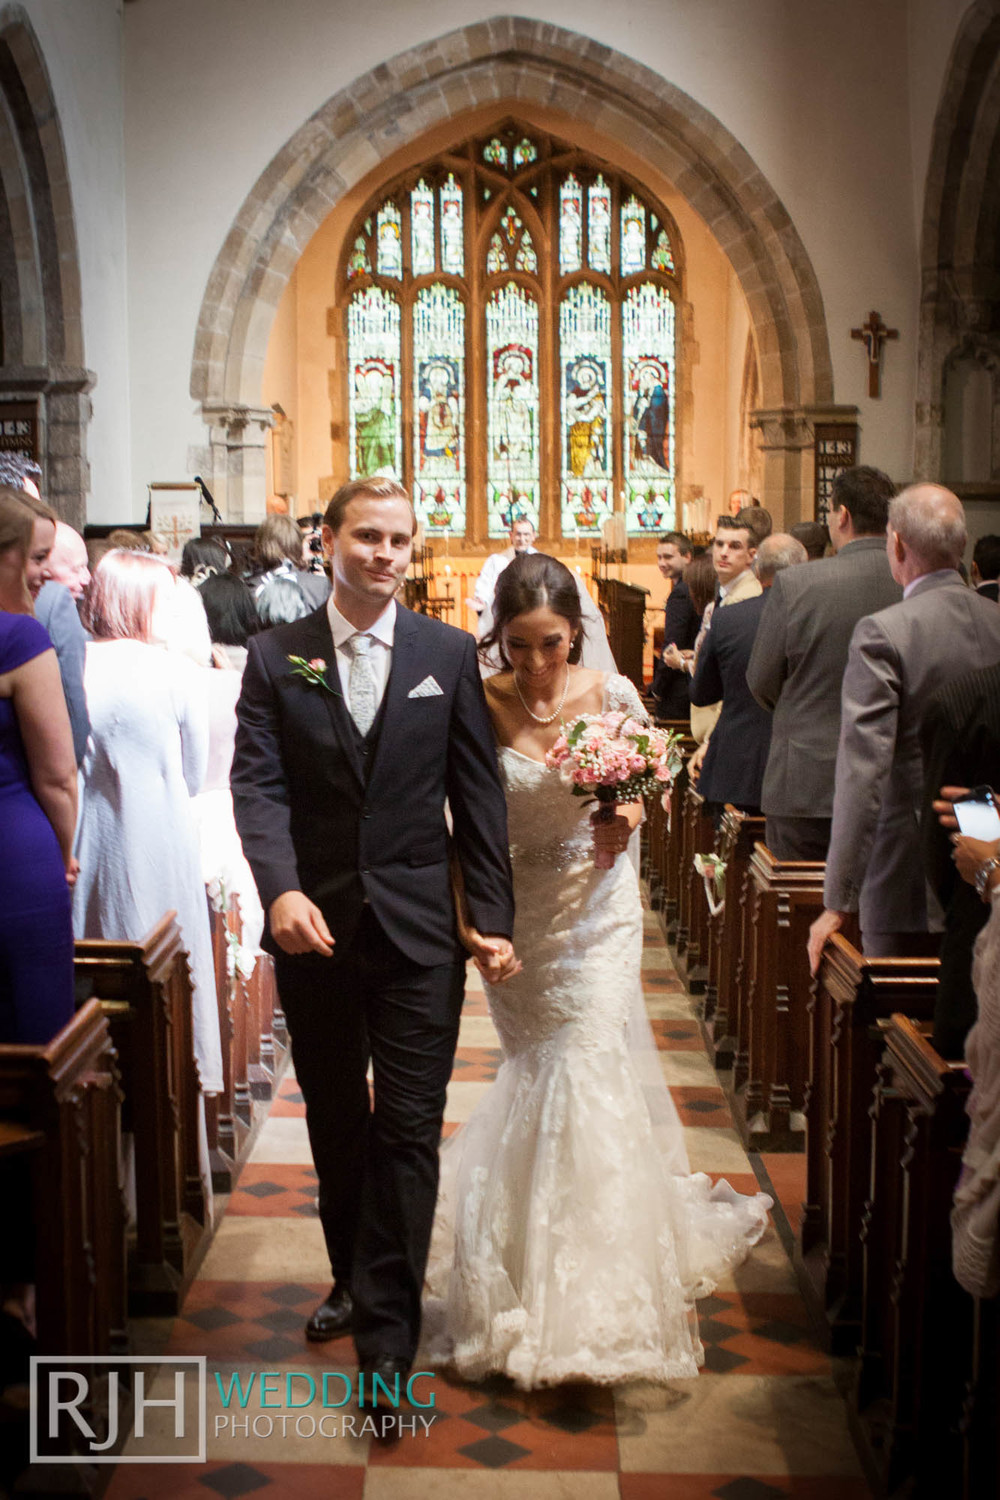 RJH Wedding Photography_Tankersley Manor Wedding_26.jpg